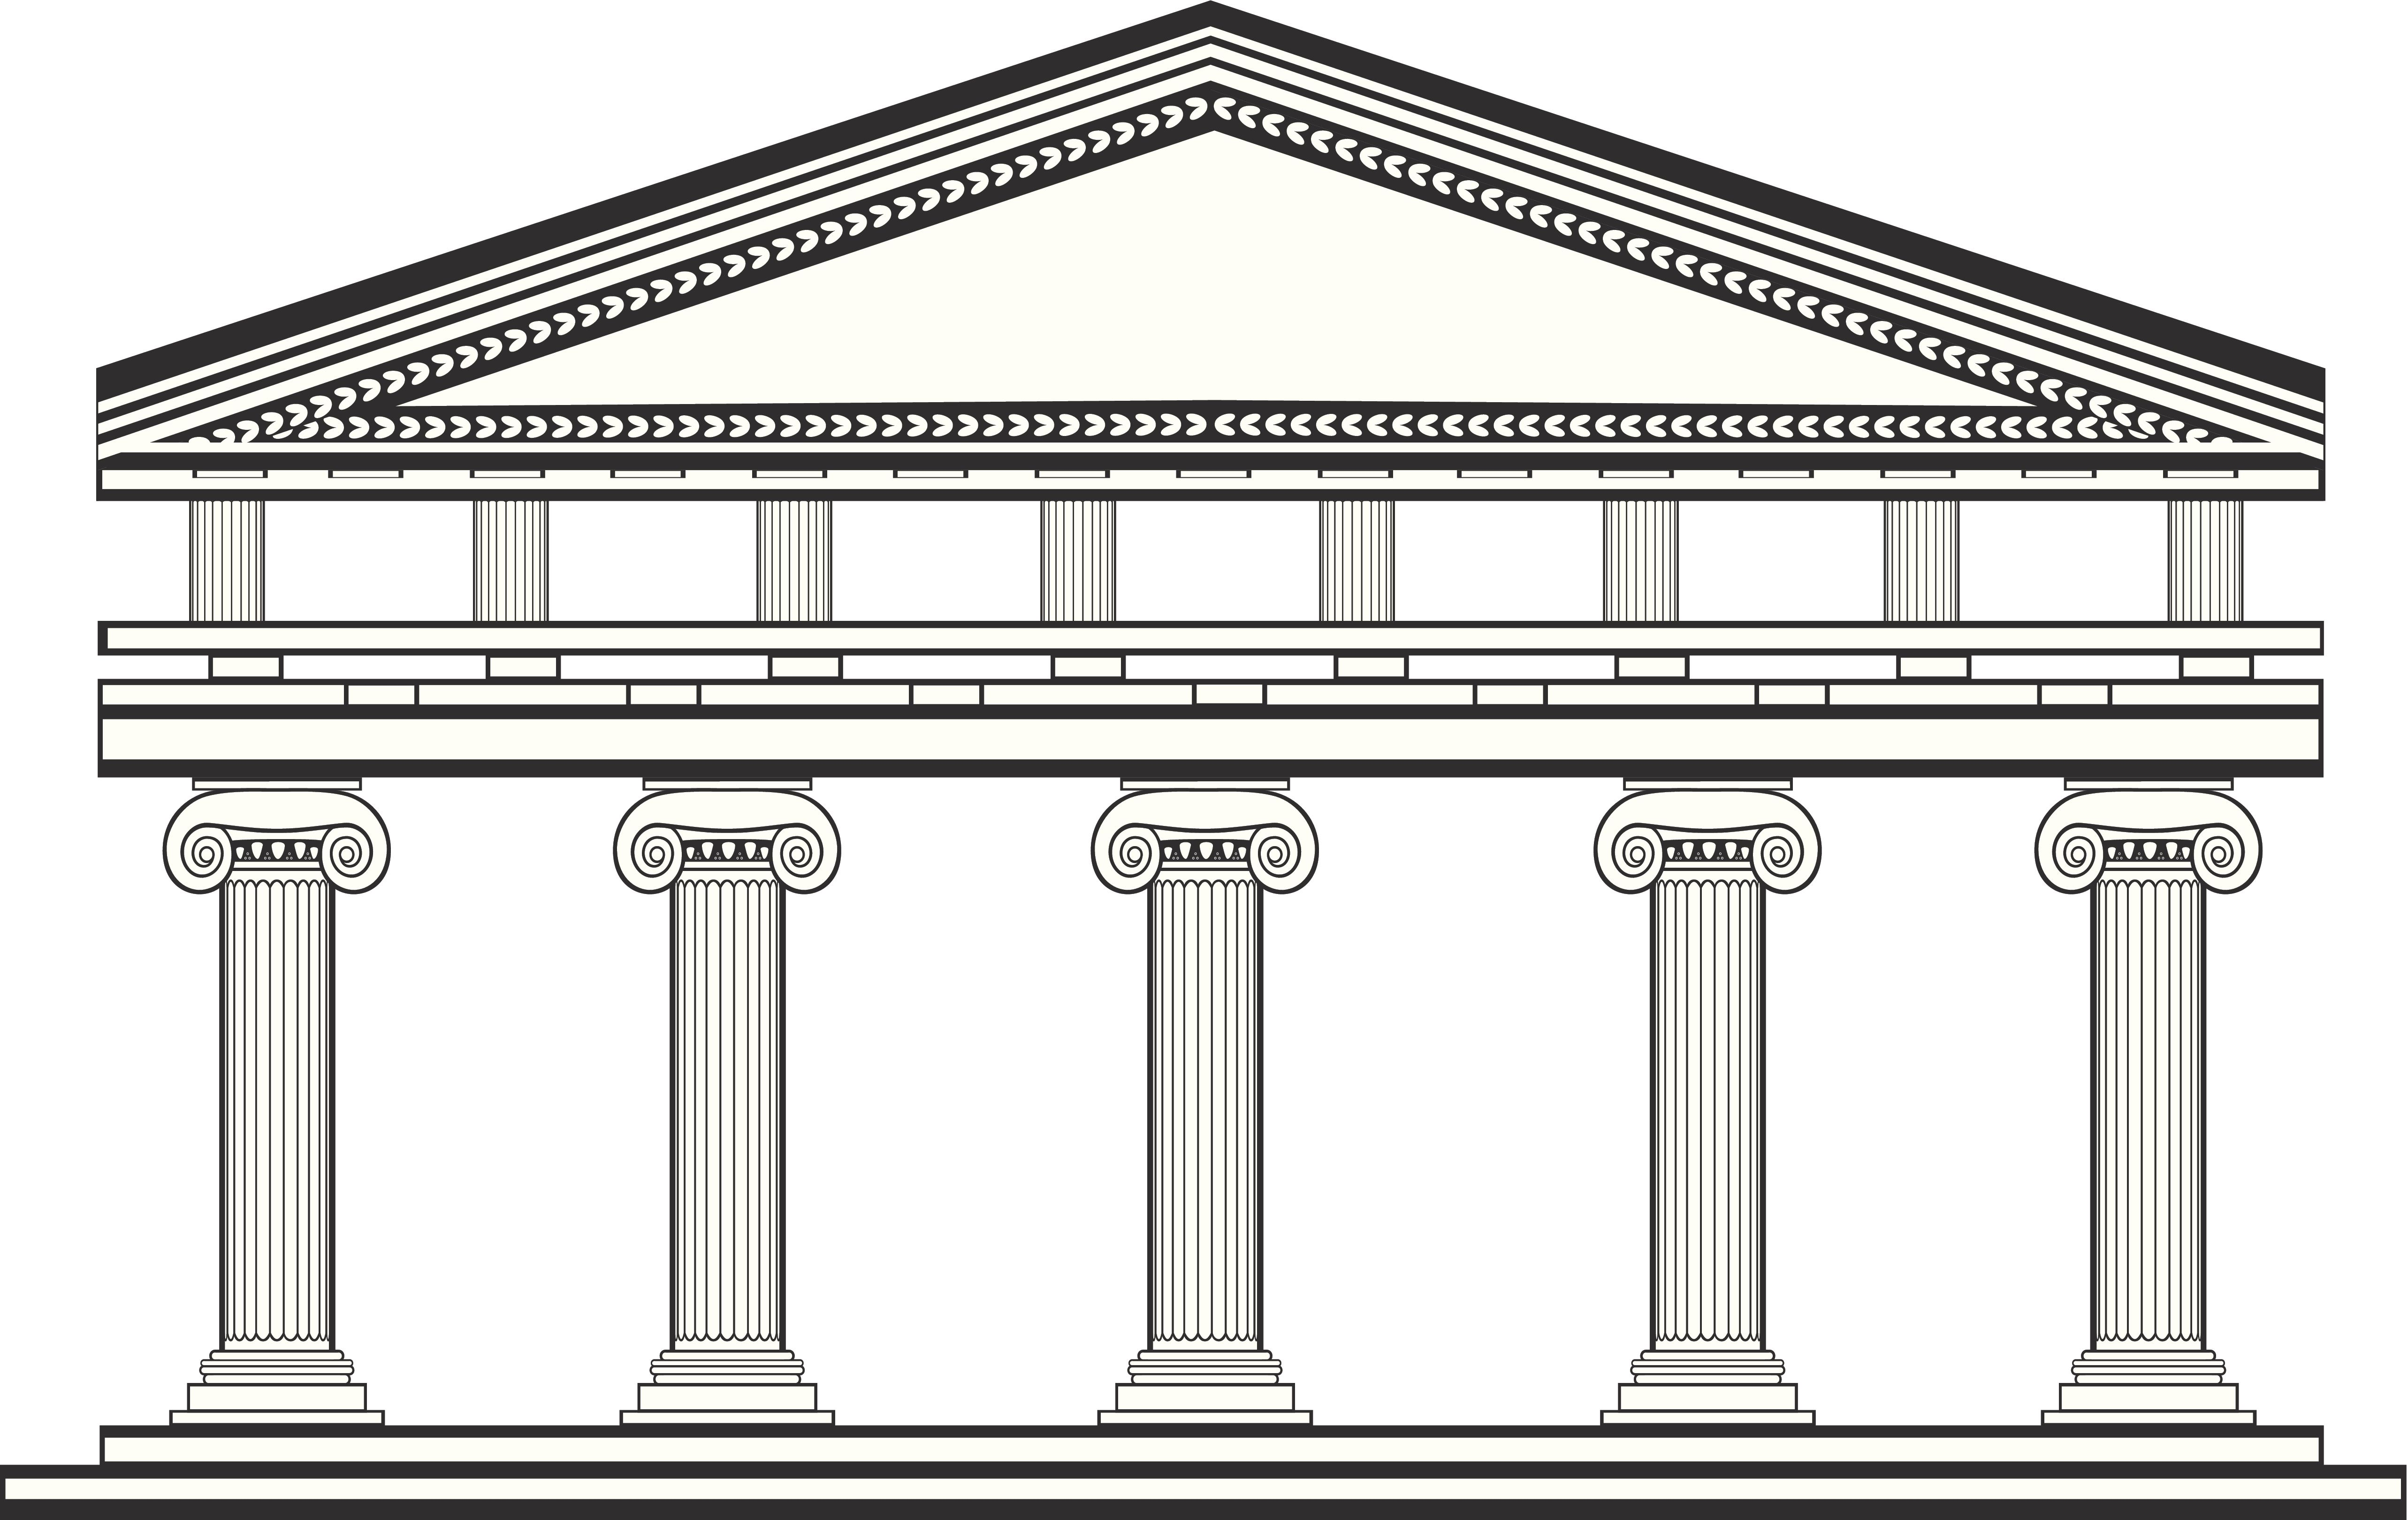 3e386a642b57 Ancient Greek temple done with Ionic columns, in a black and white  technique. Ivana Boskov / Getty Images